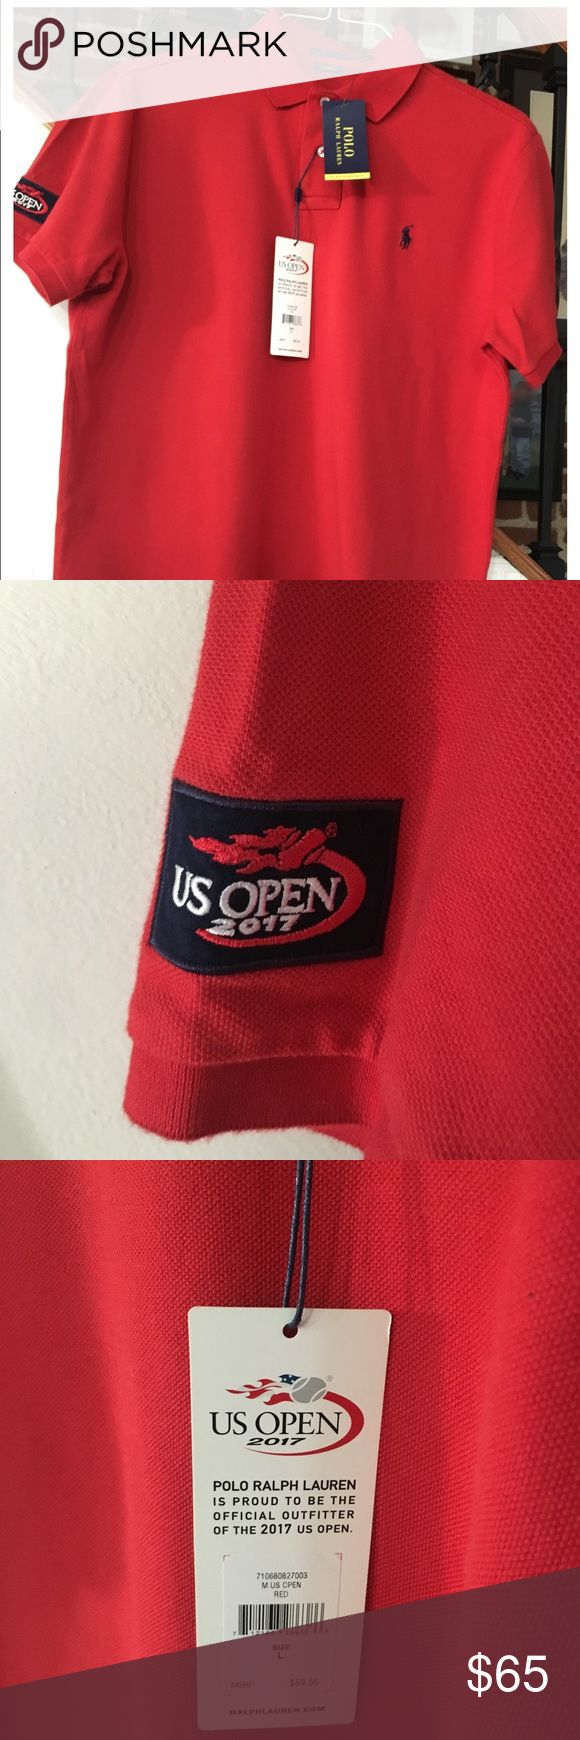 2017 Ralph Lauren US open RED Polo Shirt This is a Authentic 2017 Ralph Lauren US open Red Polo Shirt directly from the US open in Queens New York. It's a custom Fit Large.. Polo by Ralph Lauren Shirts Polos